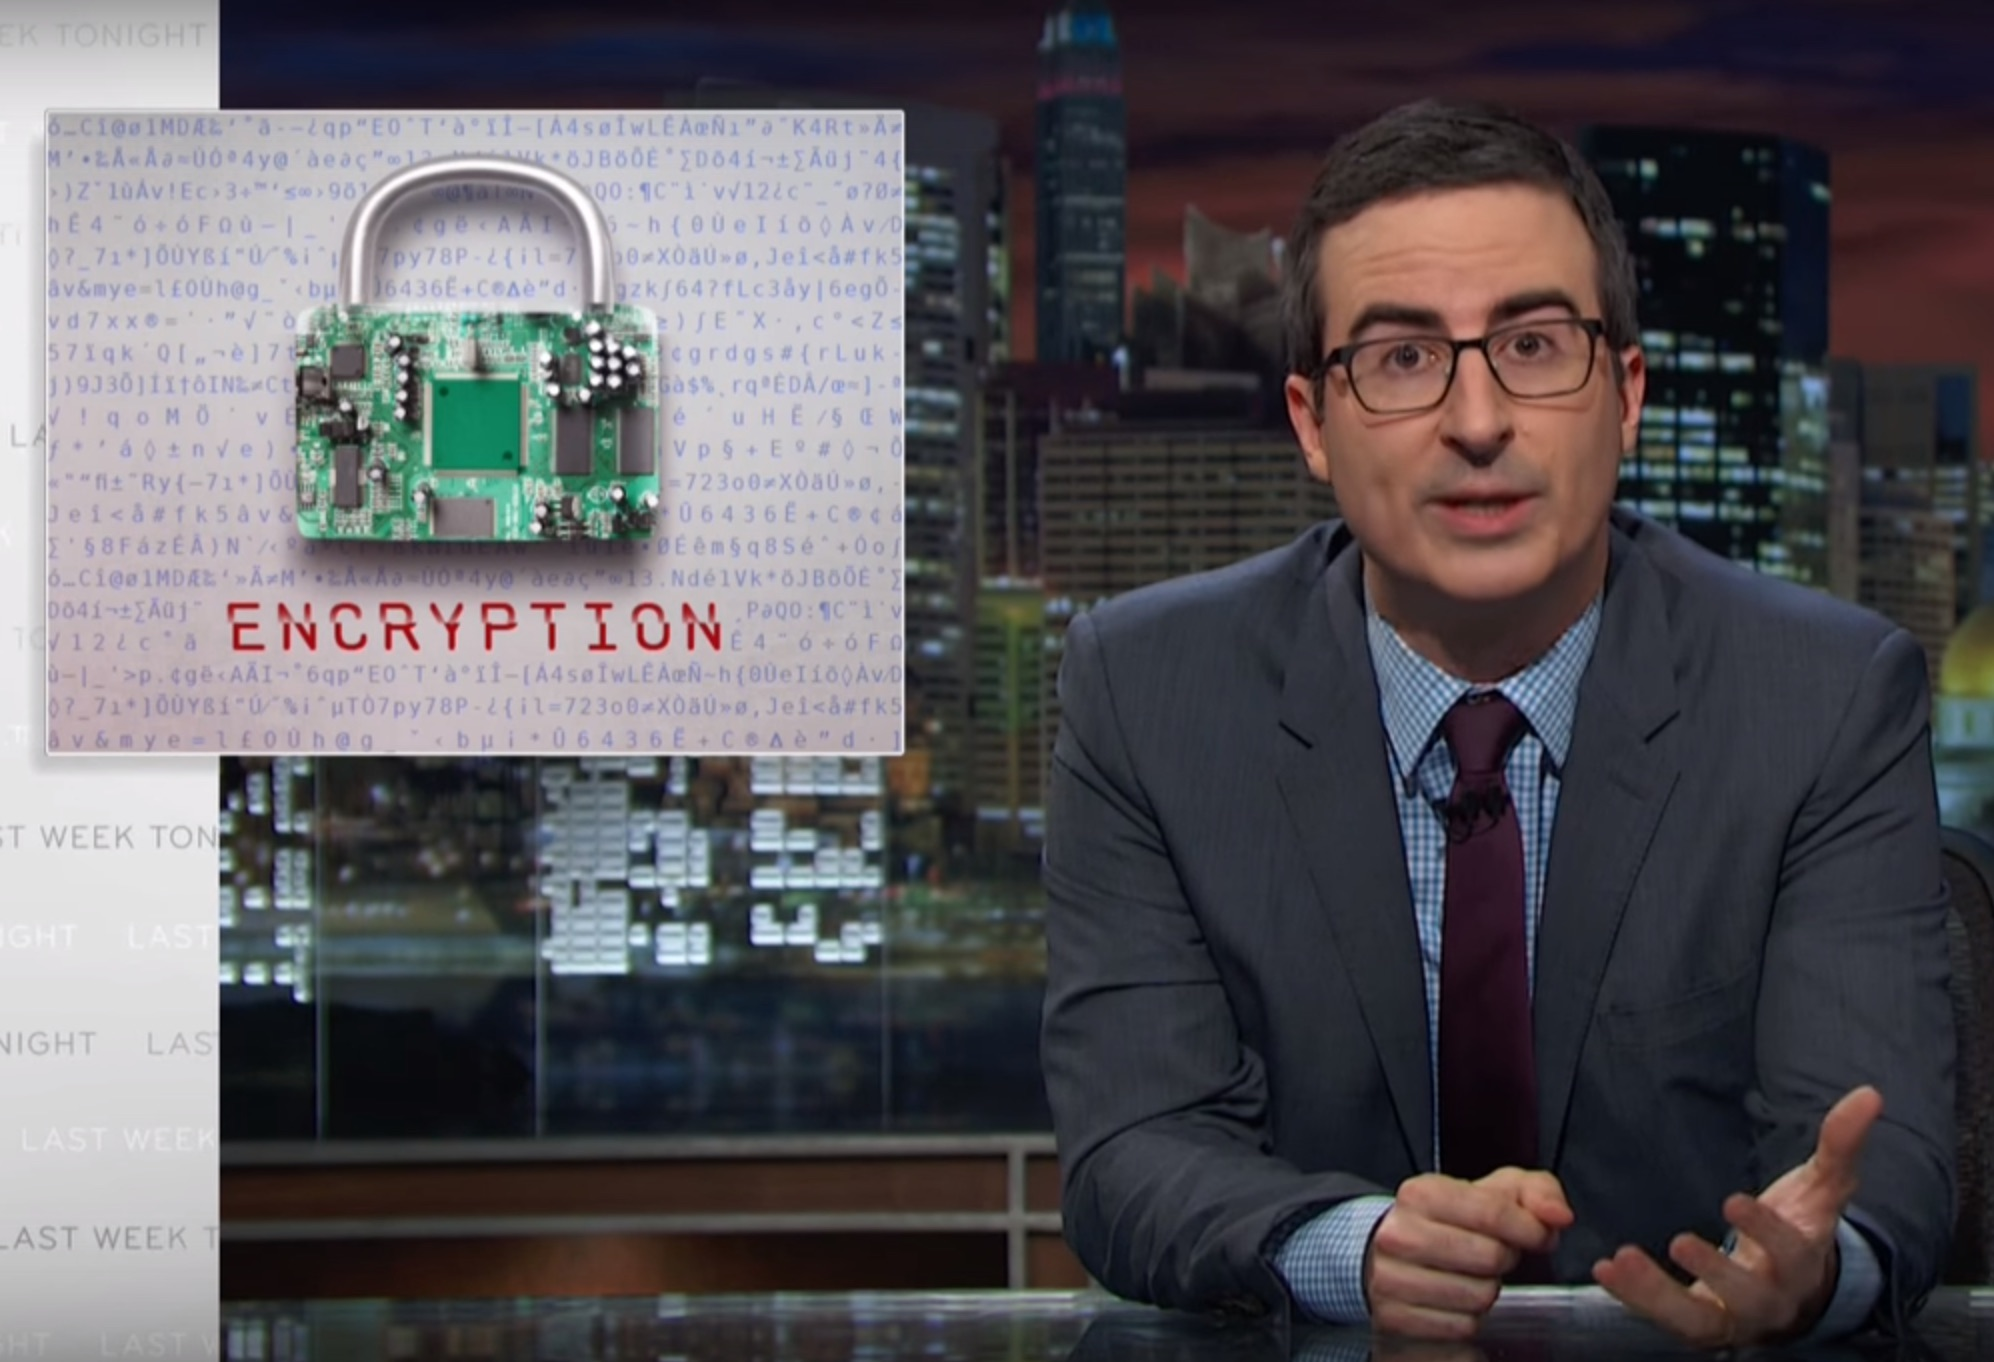 John Oliver explained a side of technology we probably don't think about